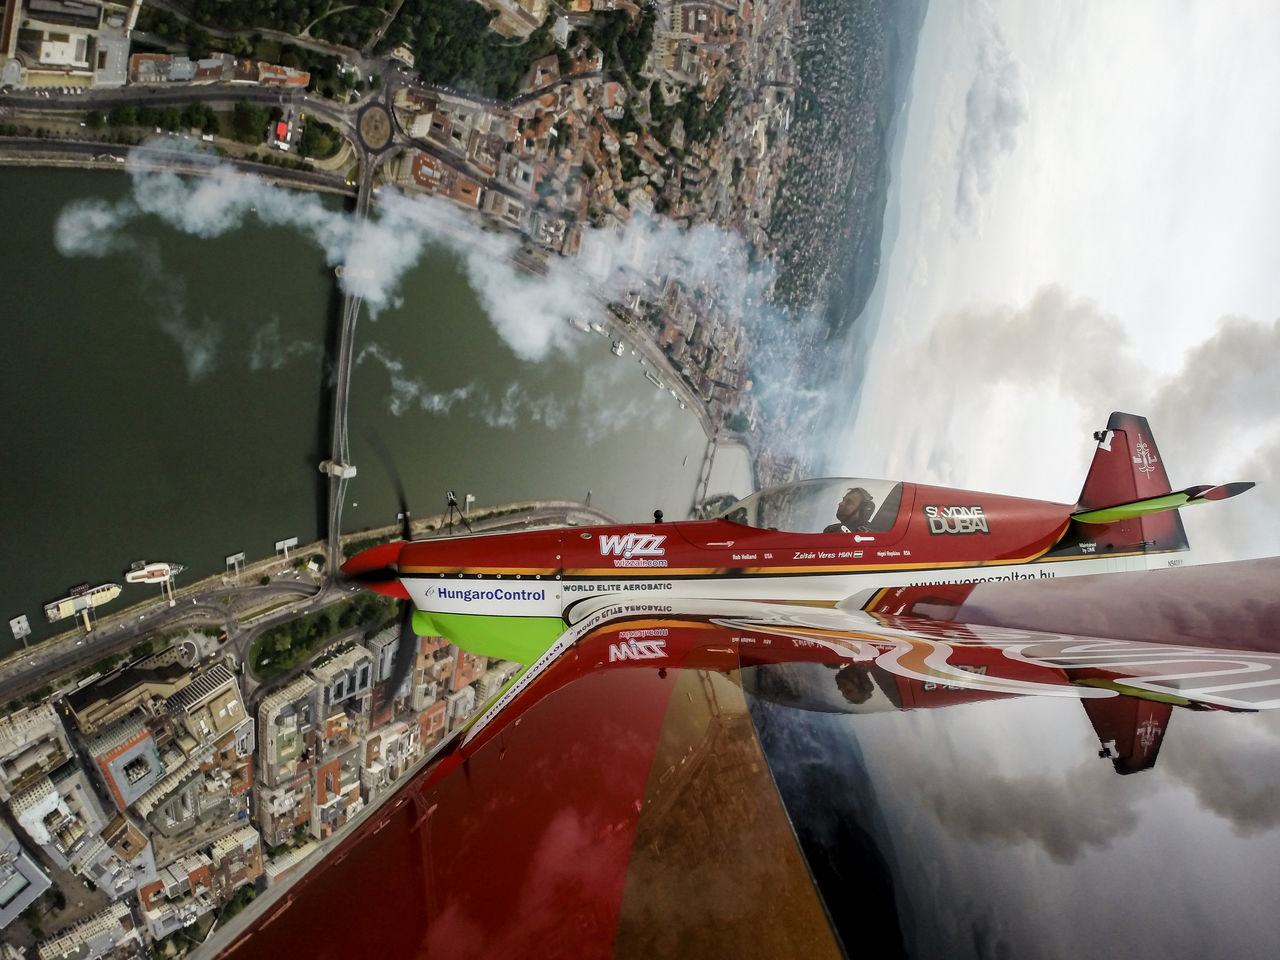 Nagyfutam - Veres Viktor aerobatic pilot Air Airplane AirPlane ✈ Budapest City Cloud - Sky Cloudy Danube Eye4photography  EyeEm EyeEm Best Shots EyeEm Gallery EyeEmBestPics Fly Landscape Nagyfutam PhotoByMe Photography Pilot River Smoke - Physical Structure Sport Market Reviewers' Top Picks